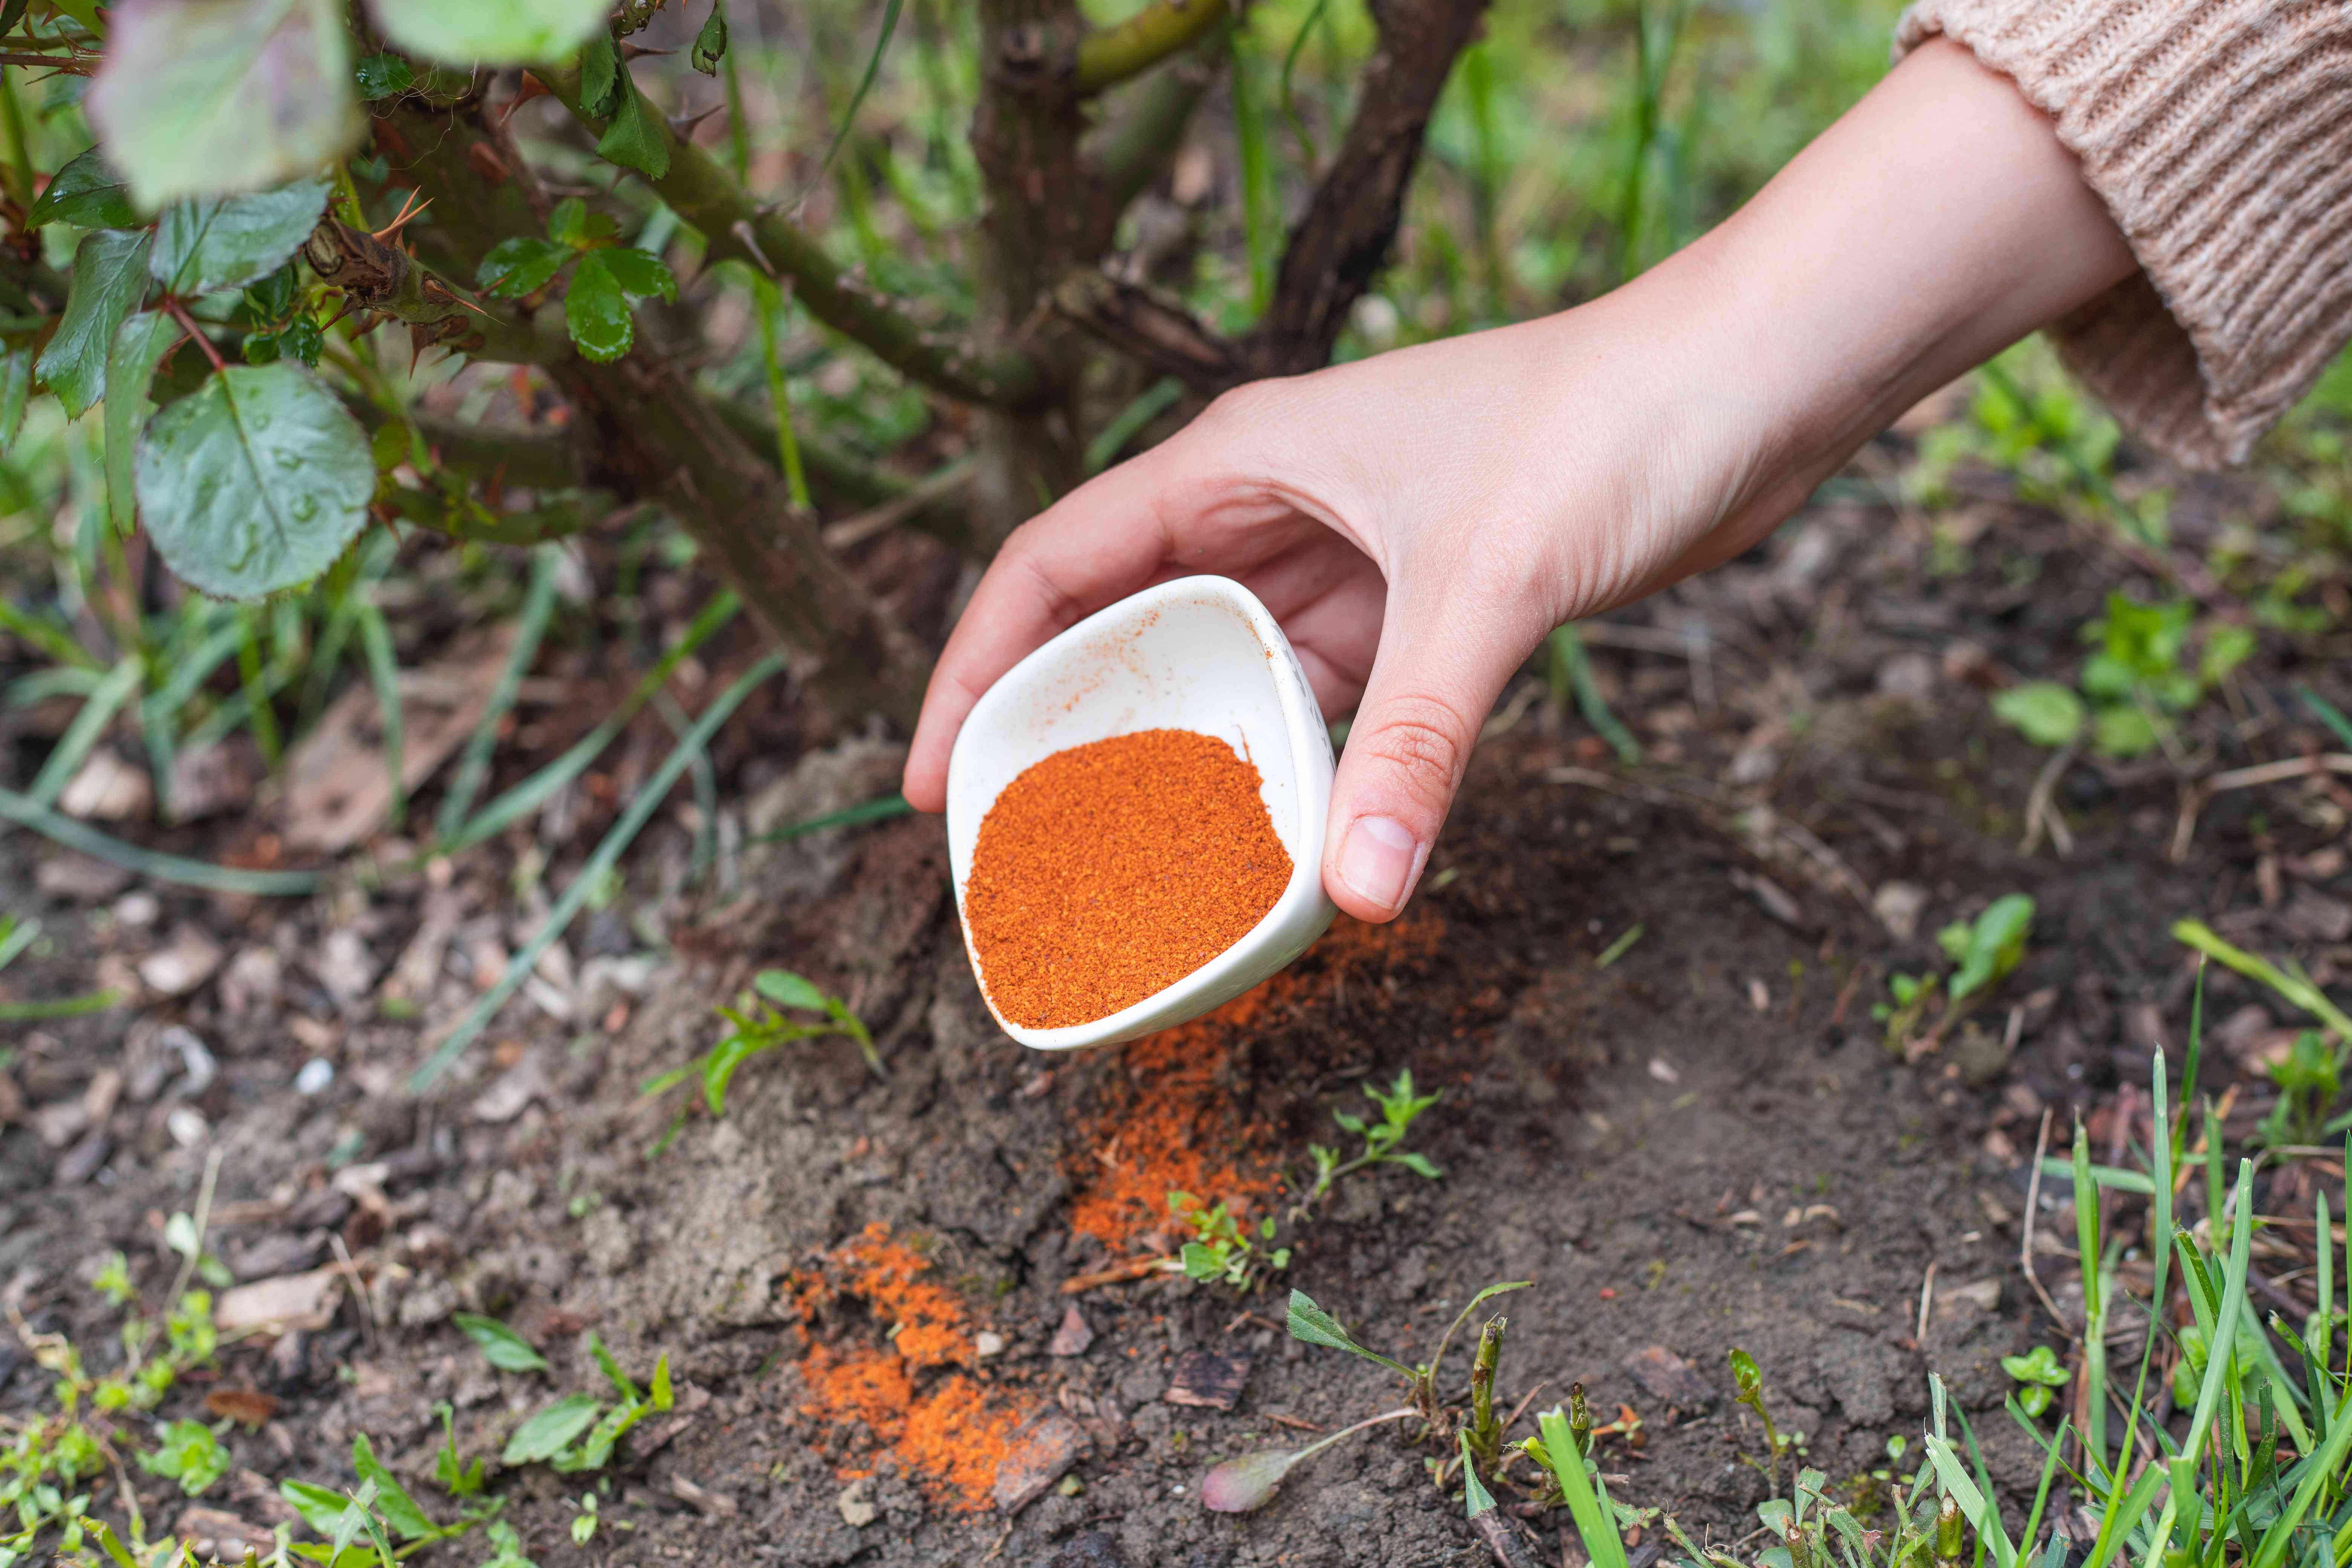 hand dumps small bowl of expired spices near outside plant to deter animals